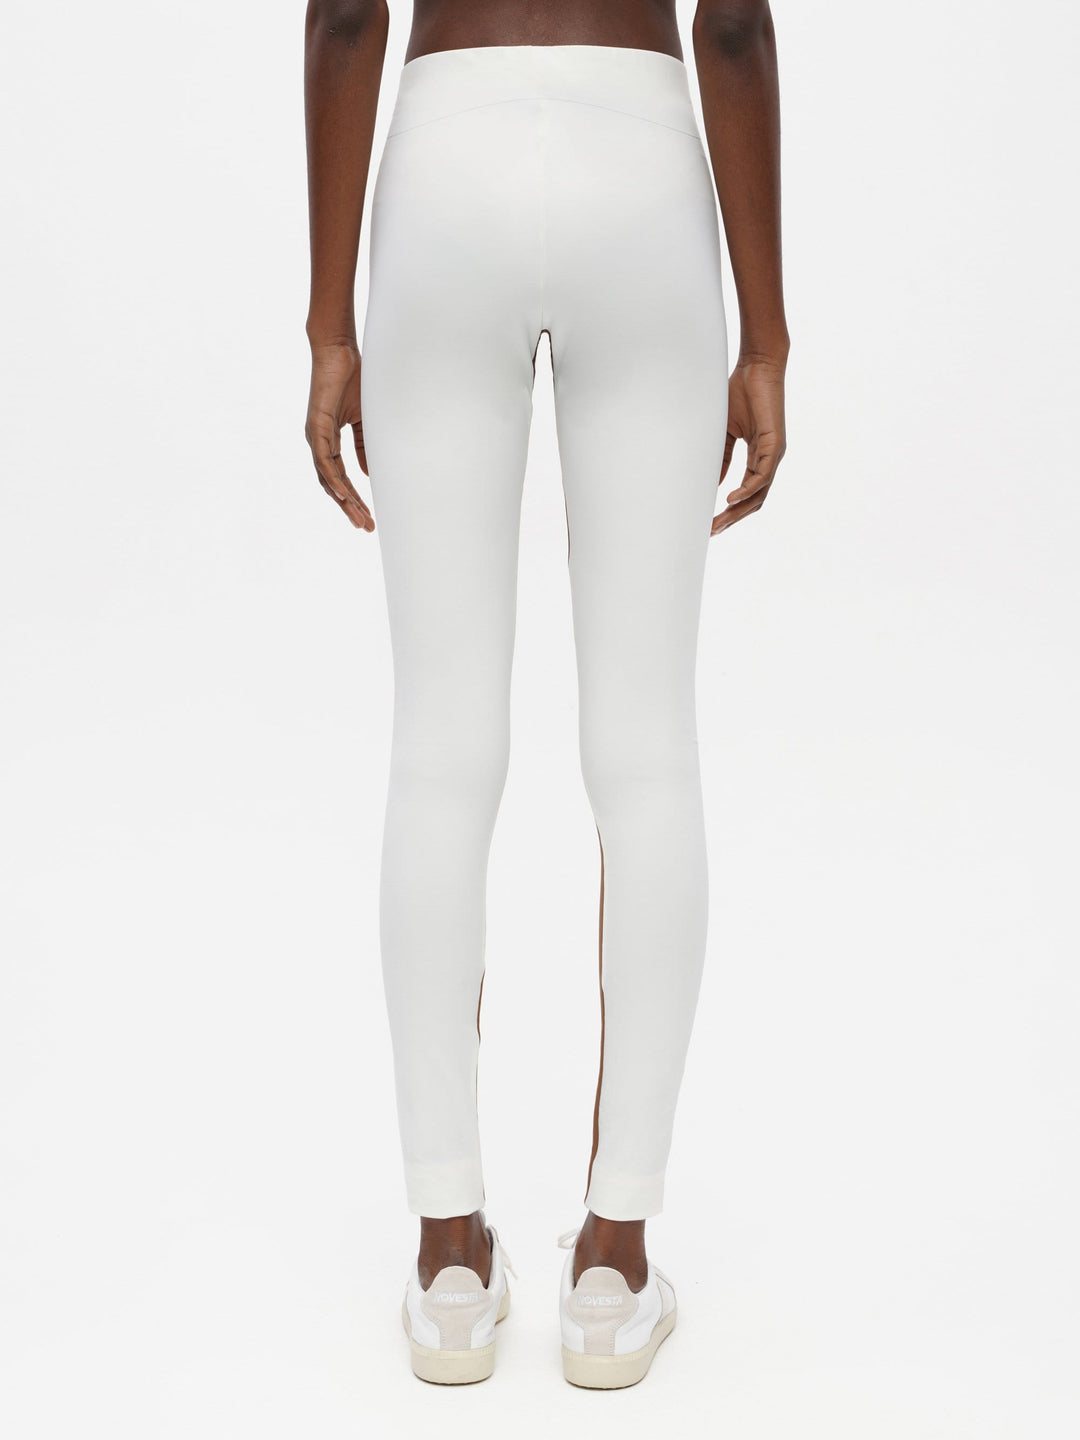 Hourglass Contour Legging White